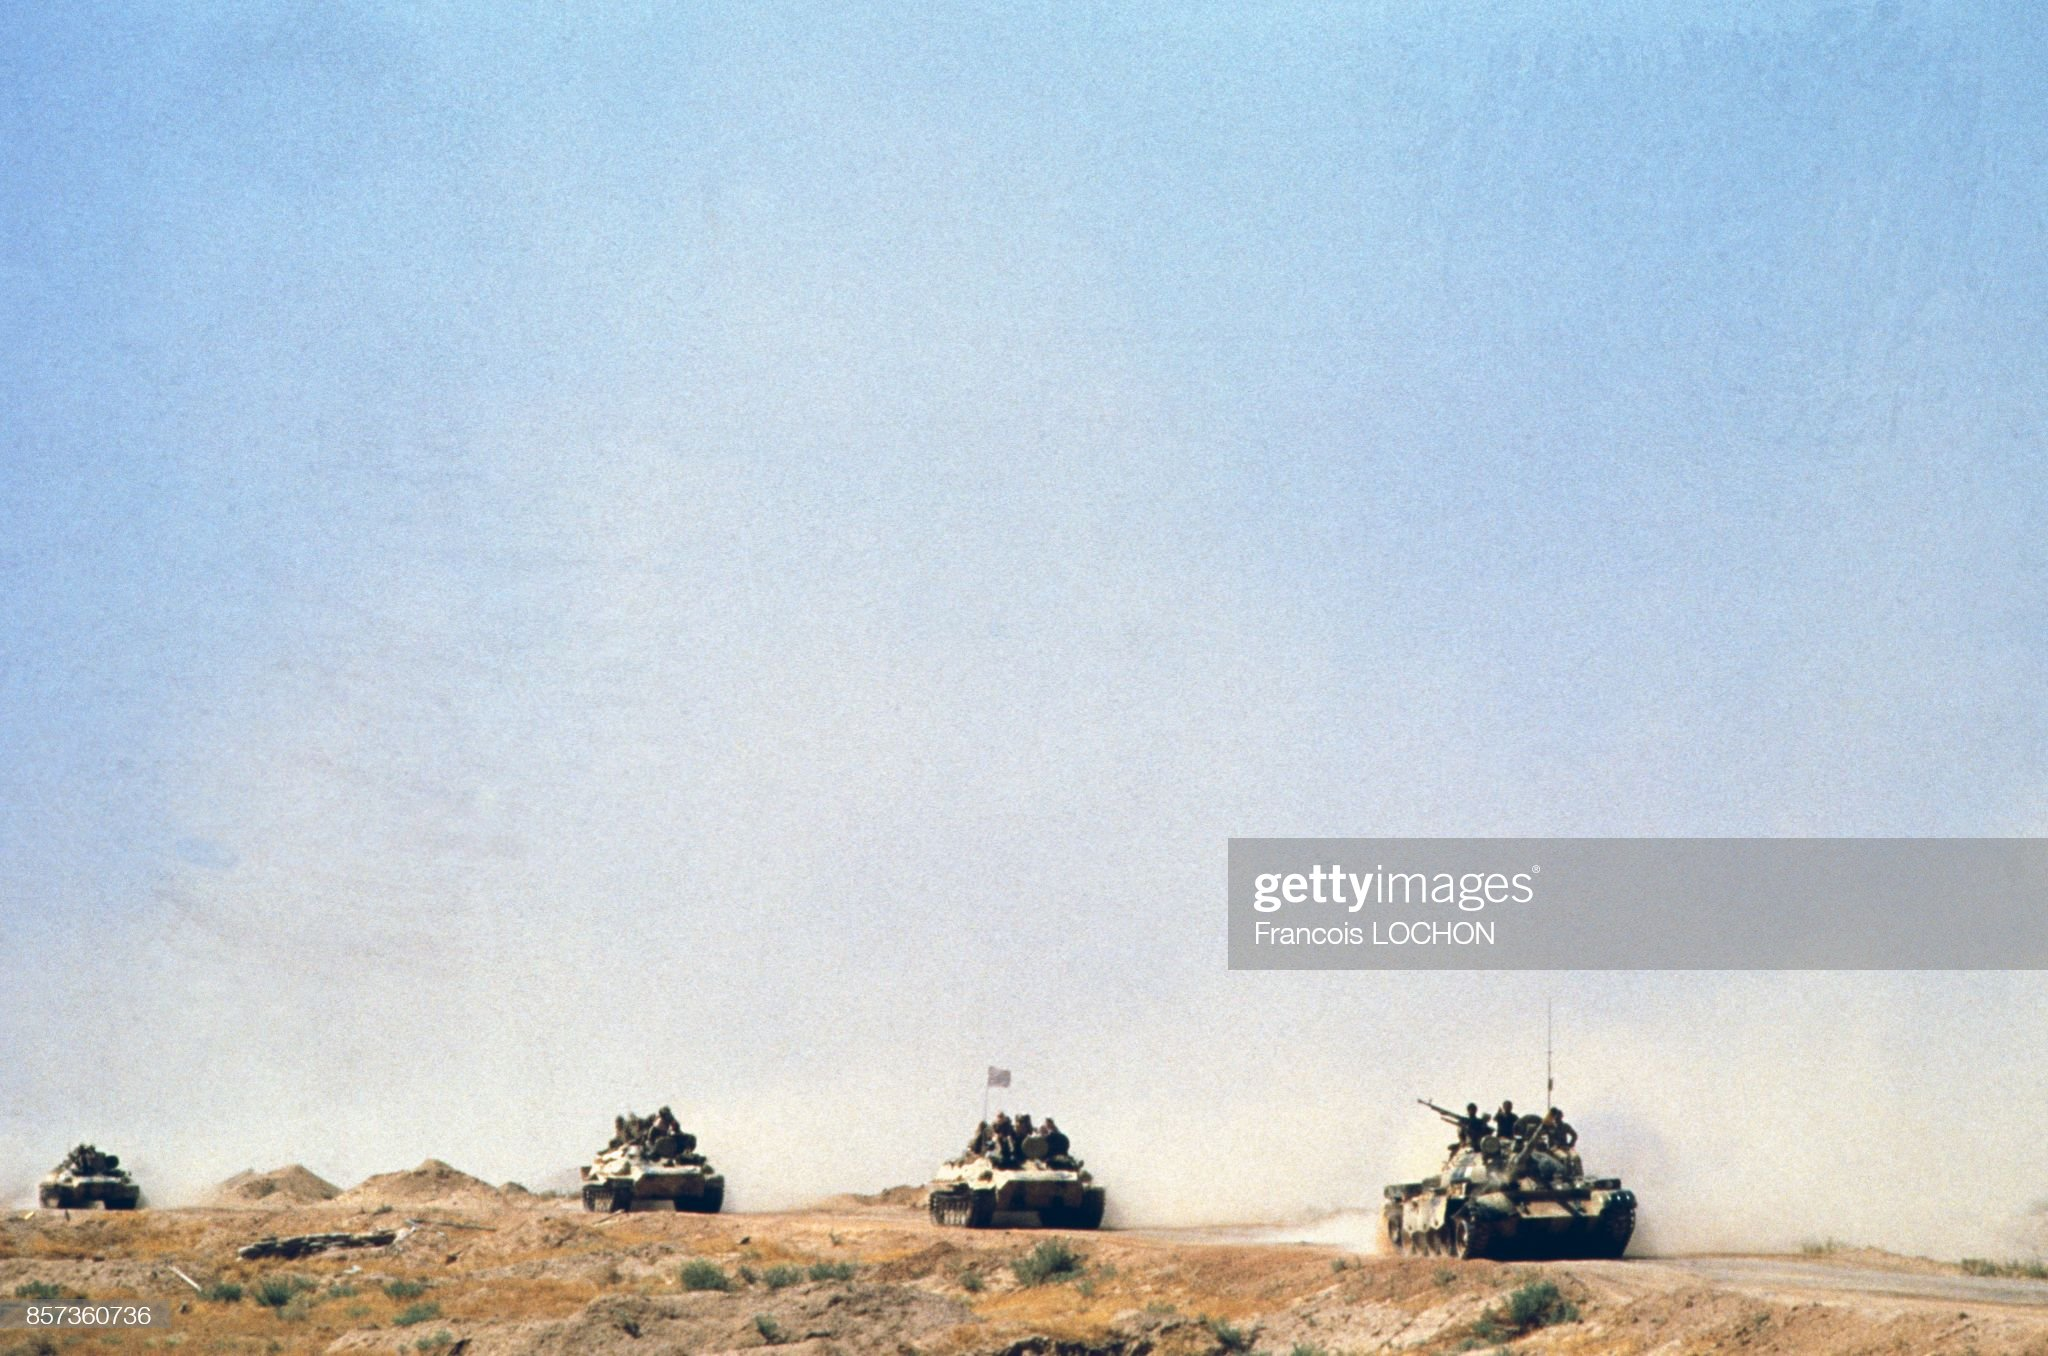 https://media.gettyimages.com/photos/iraqi-troops-seizing-tanks-from-the-iran-army-in-zubeidat-area-on-19-picture-id857360736?s=2048x2048